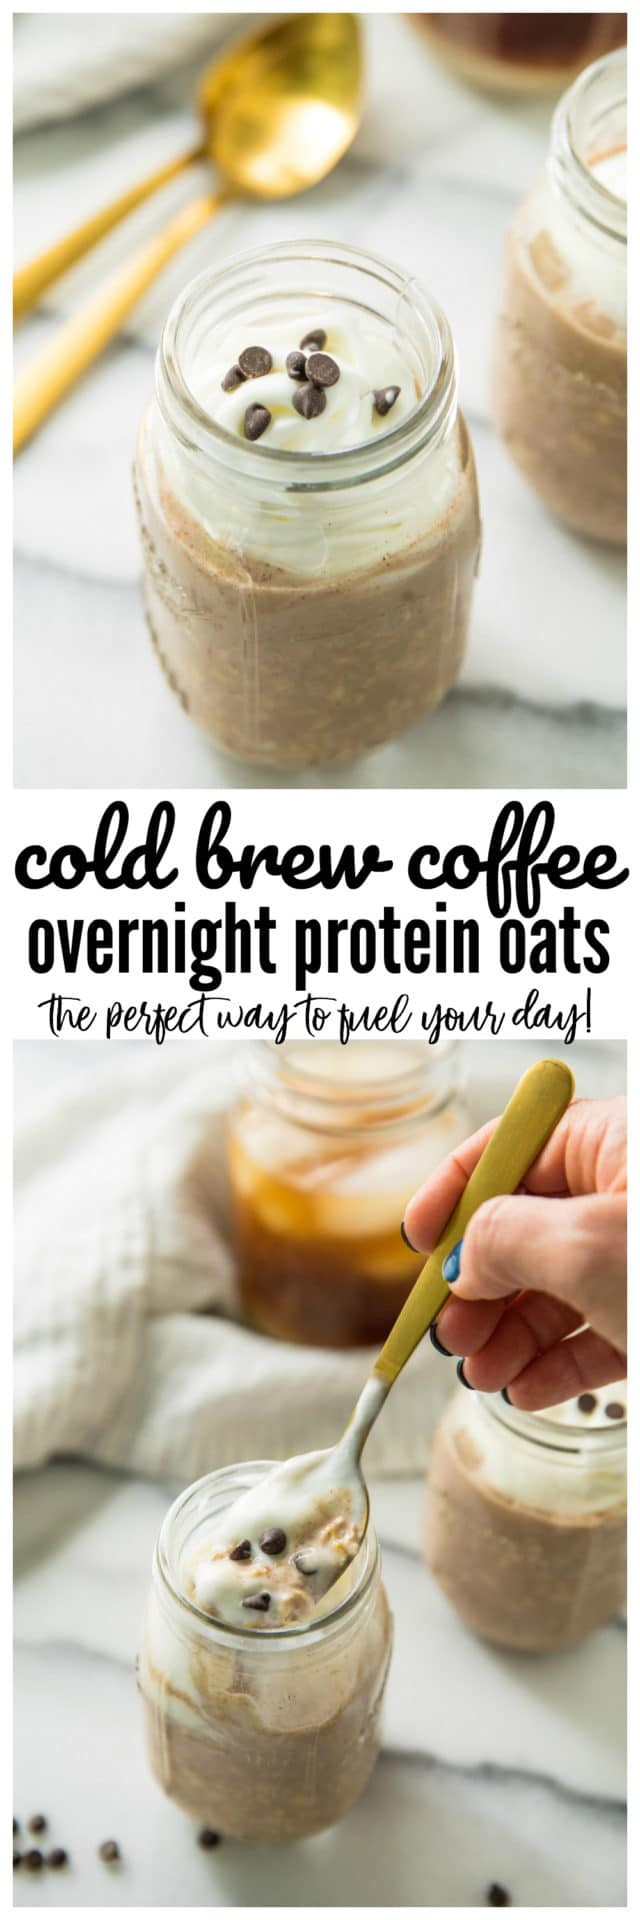 Pinterest image of Cold Brew Coffee Overnight Protein Oats